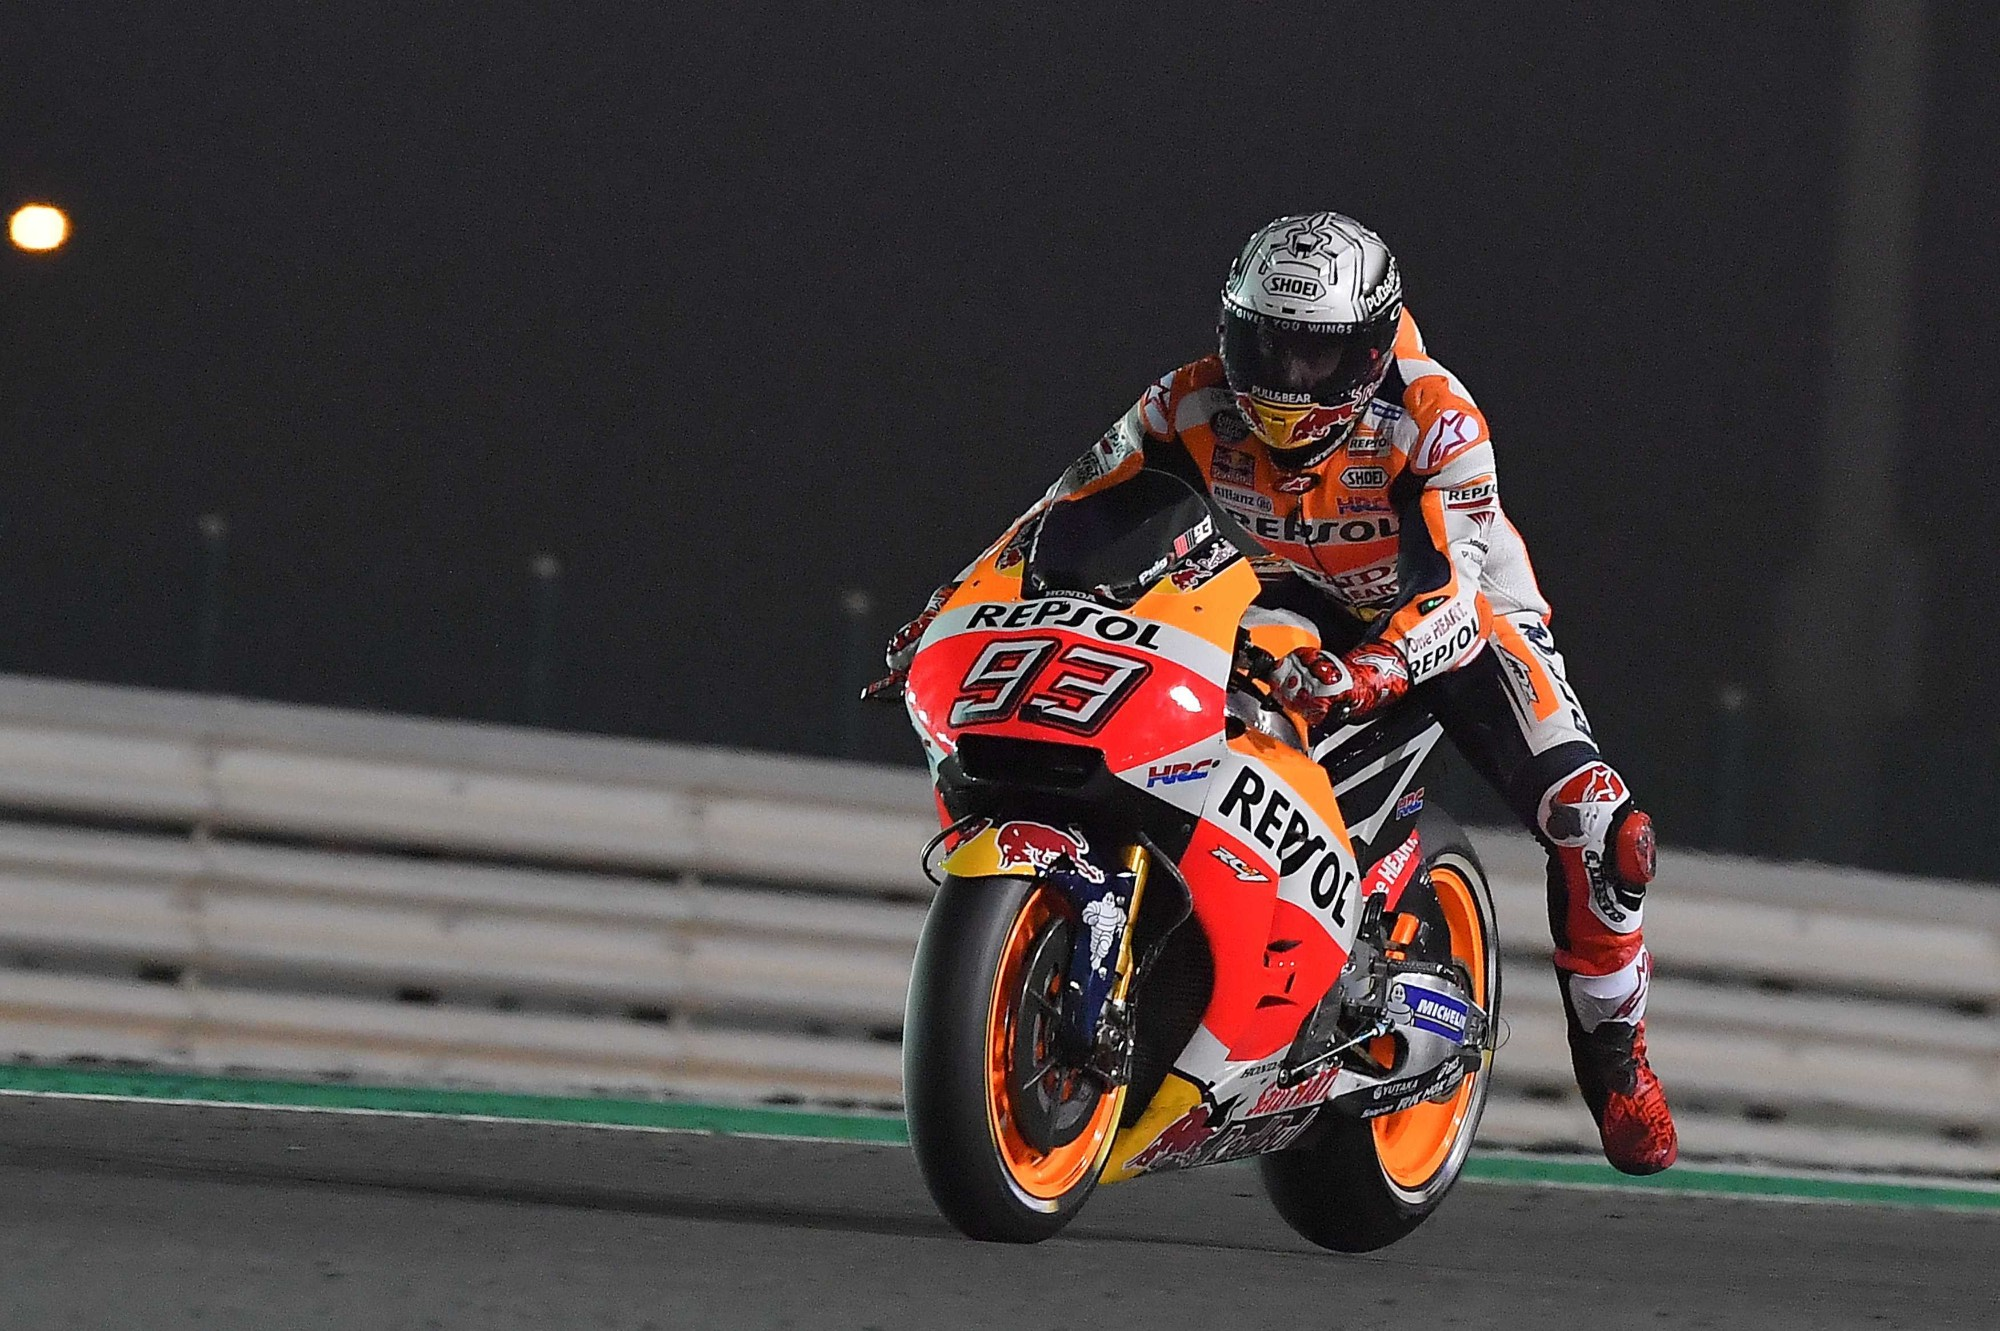 Motogp Brembo Offers An Inside Look At Using The Brakes At Losail International Circuit Roadracing World Magazine Motorcycle Riding Racing Tech News